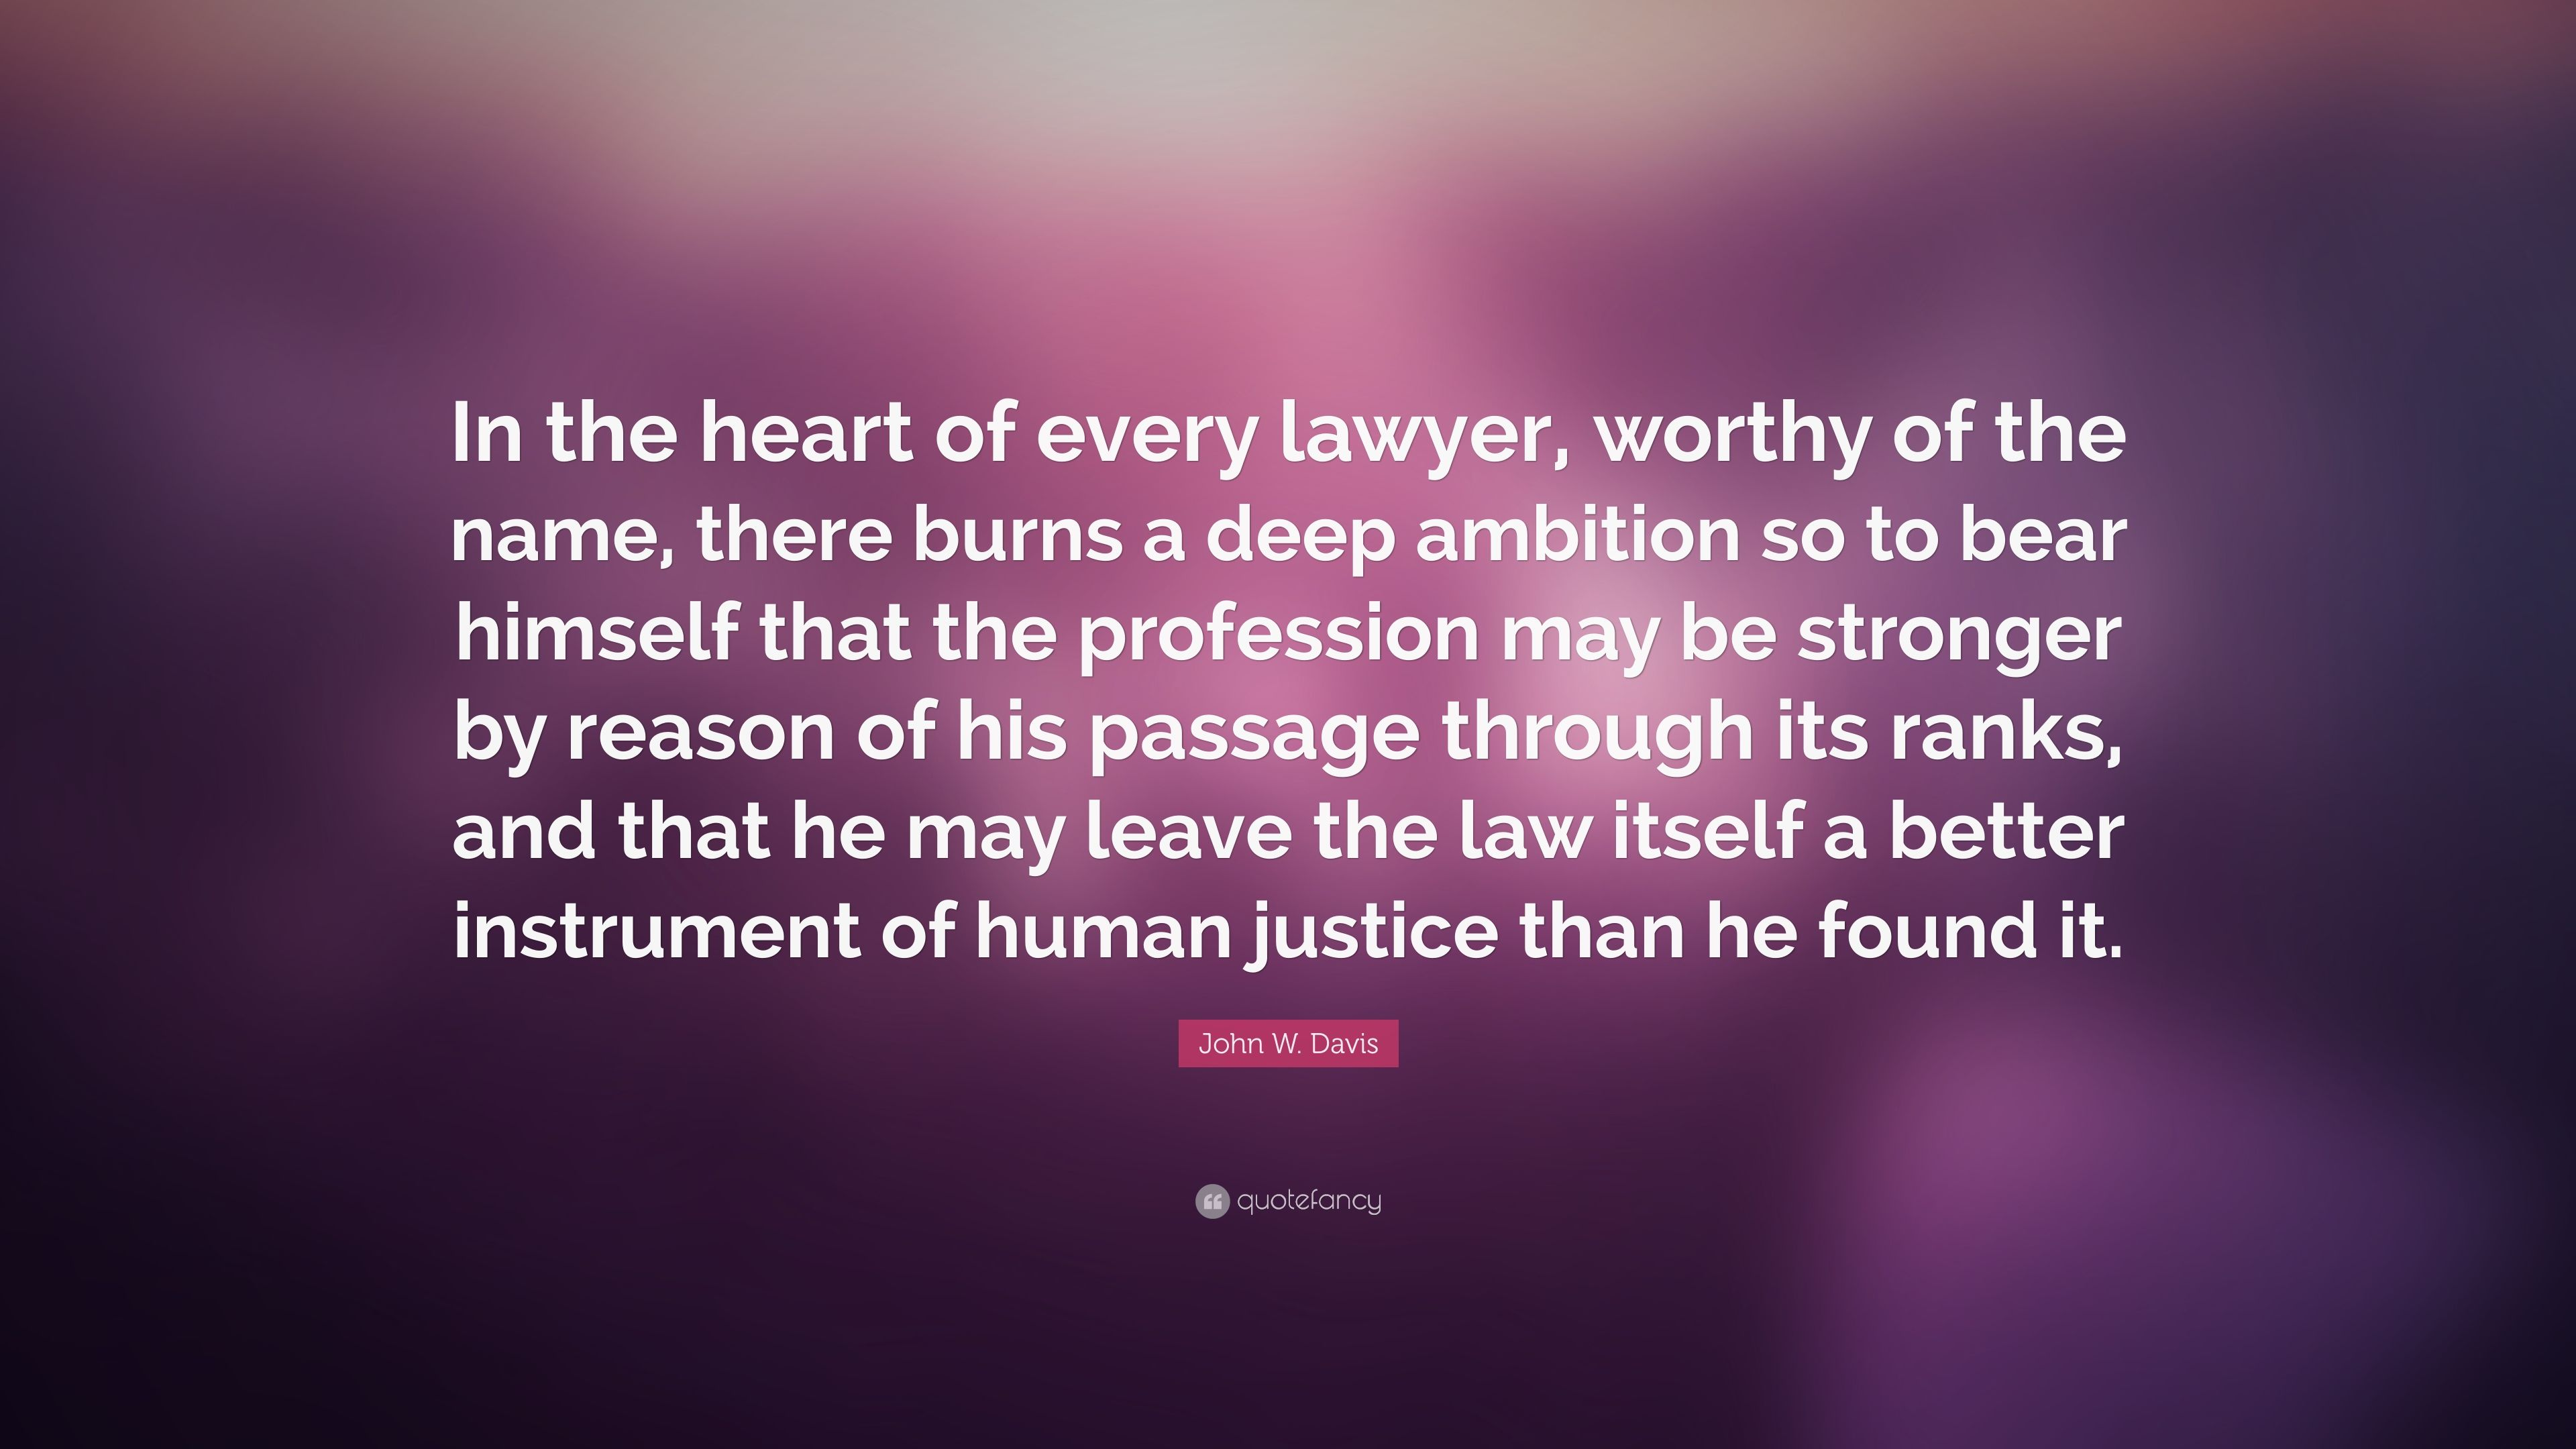 ambition to be a lawyer Essay on my aim in life to become a lawyer essay on my ambition in life to become a lawyer rash smart mind loading unsubscribe from rash smart mind.